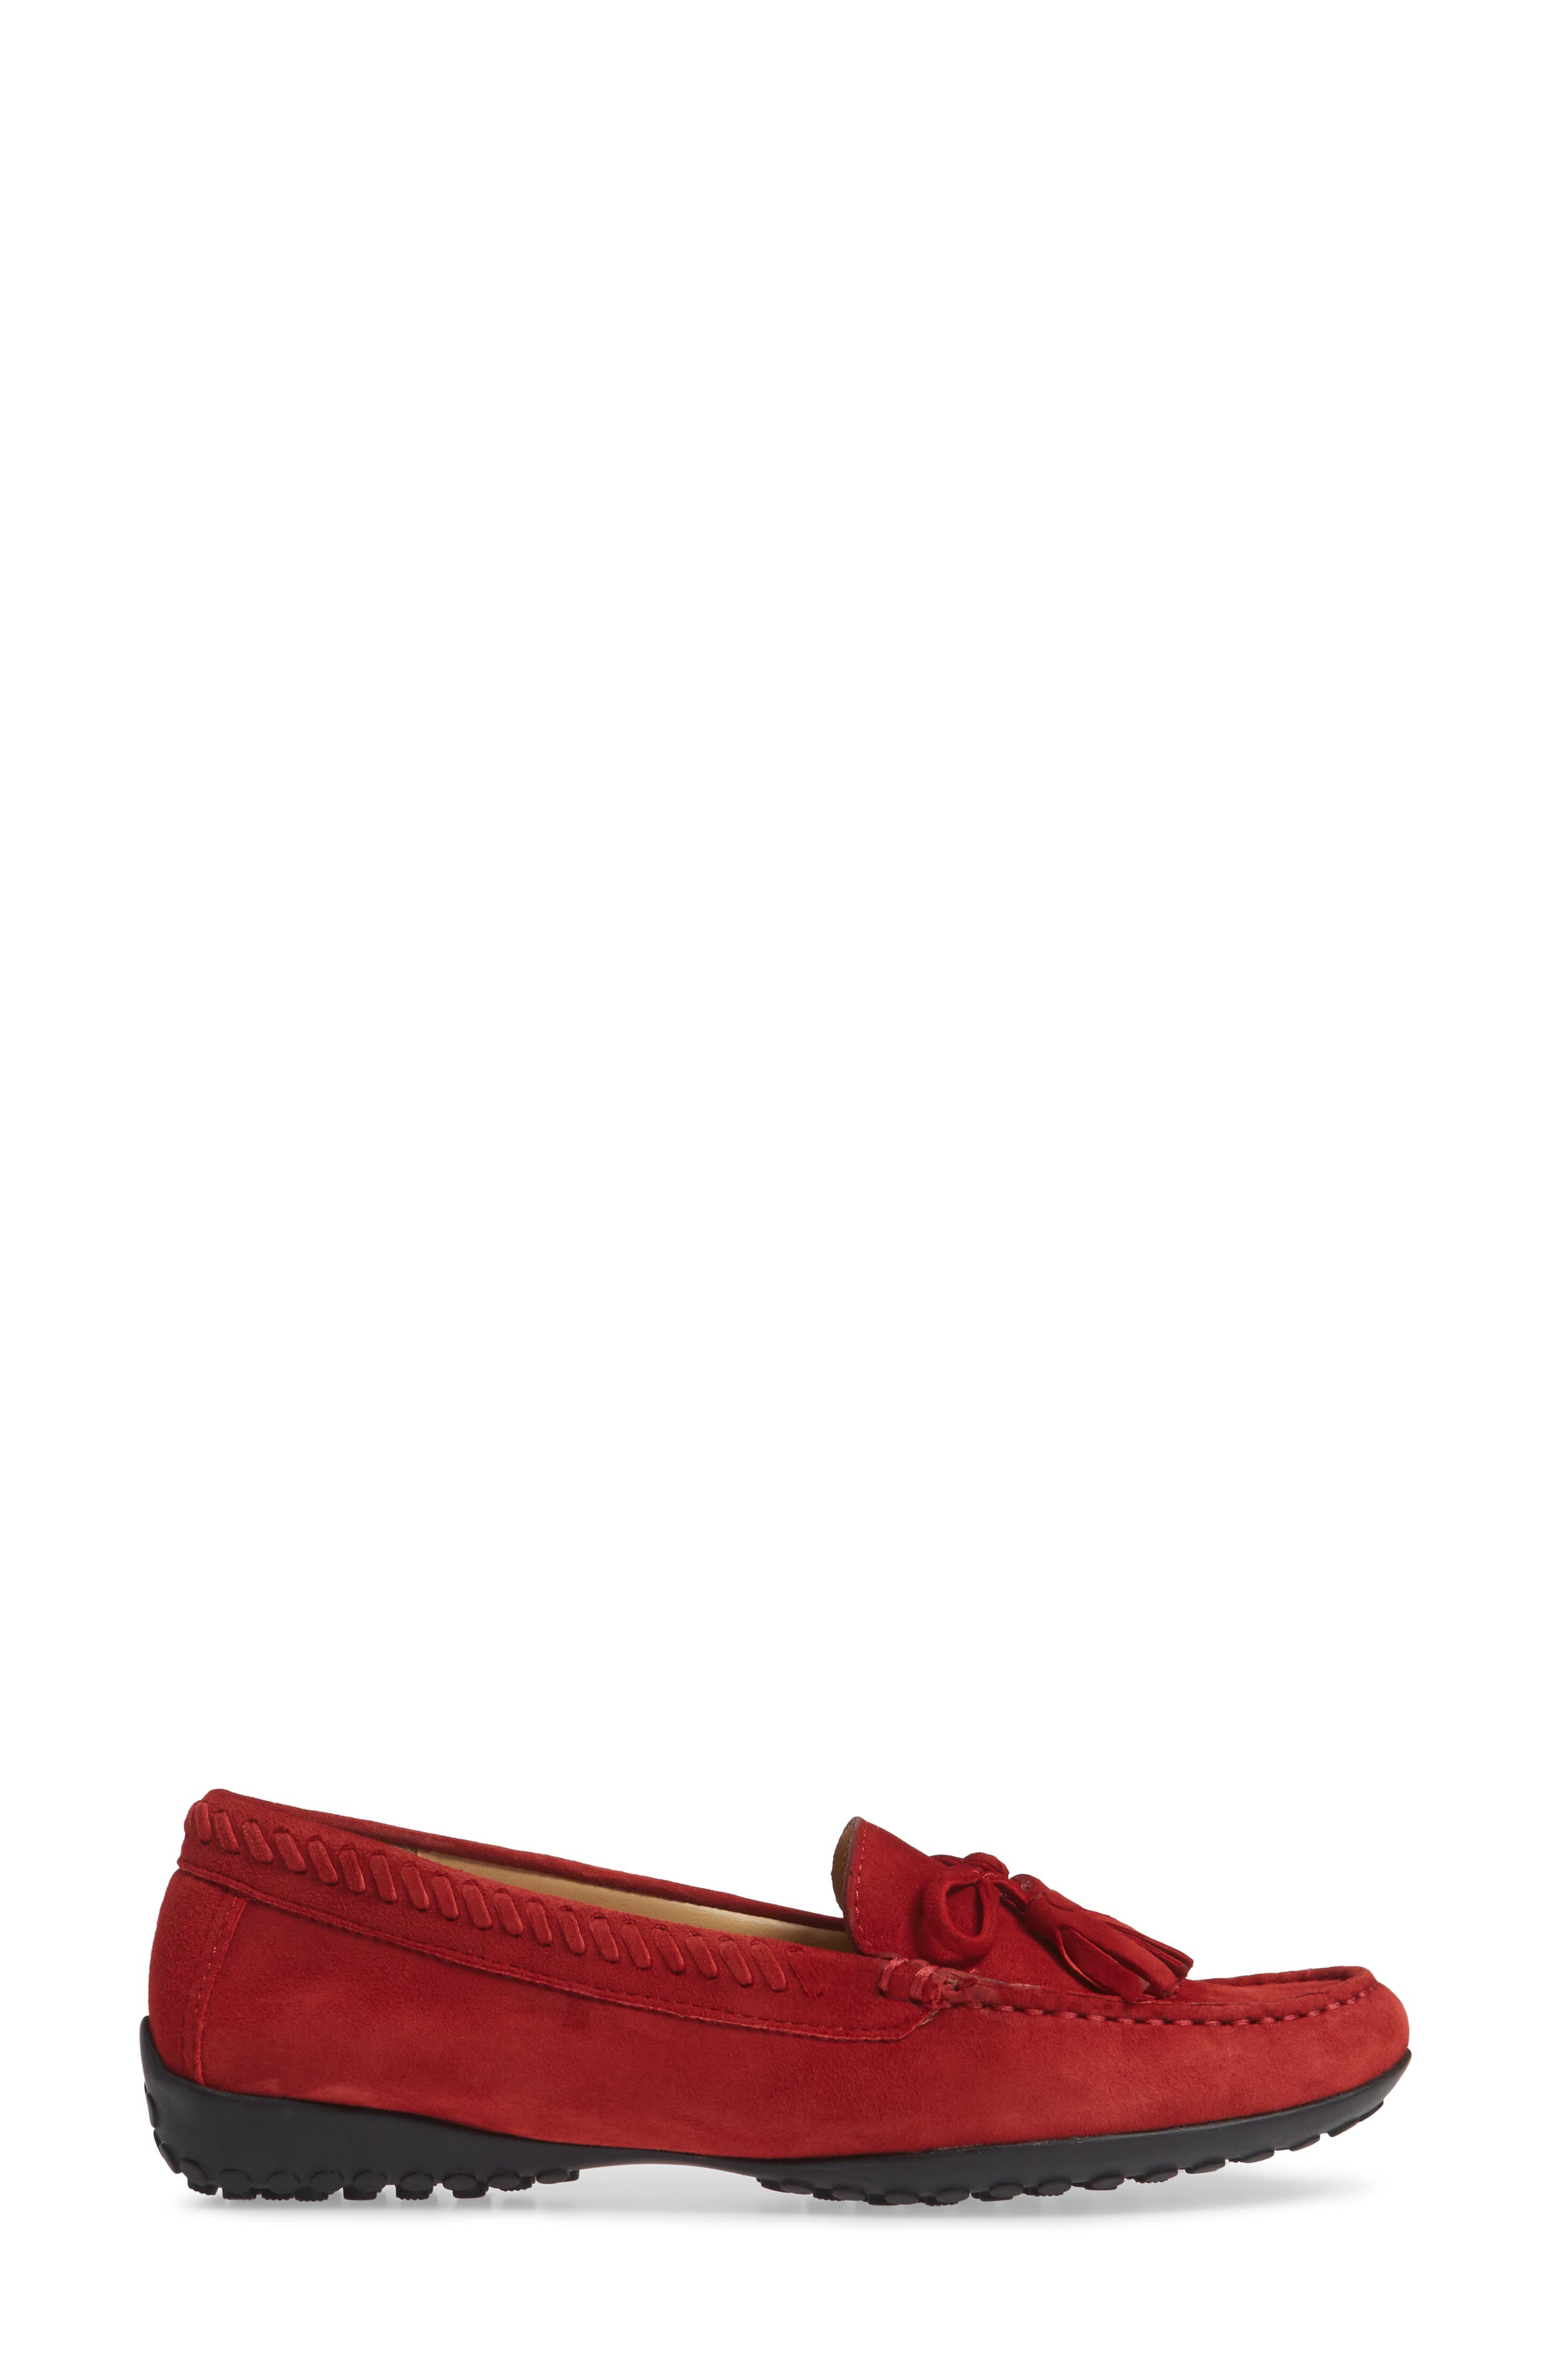 Acajou Driving Moccasin,                             Alternate thumbnail 6, color,                             Red Suede